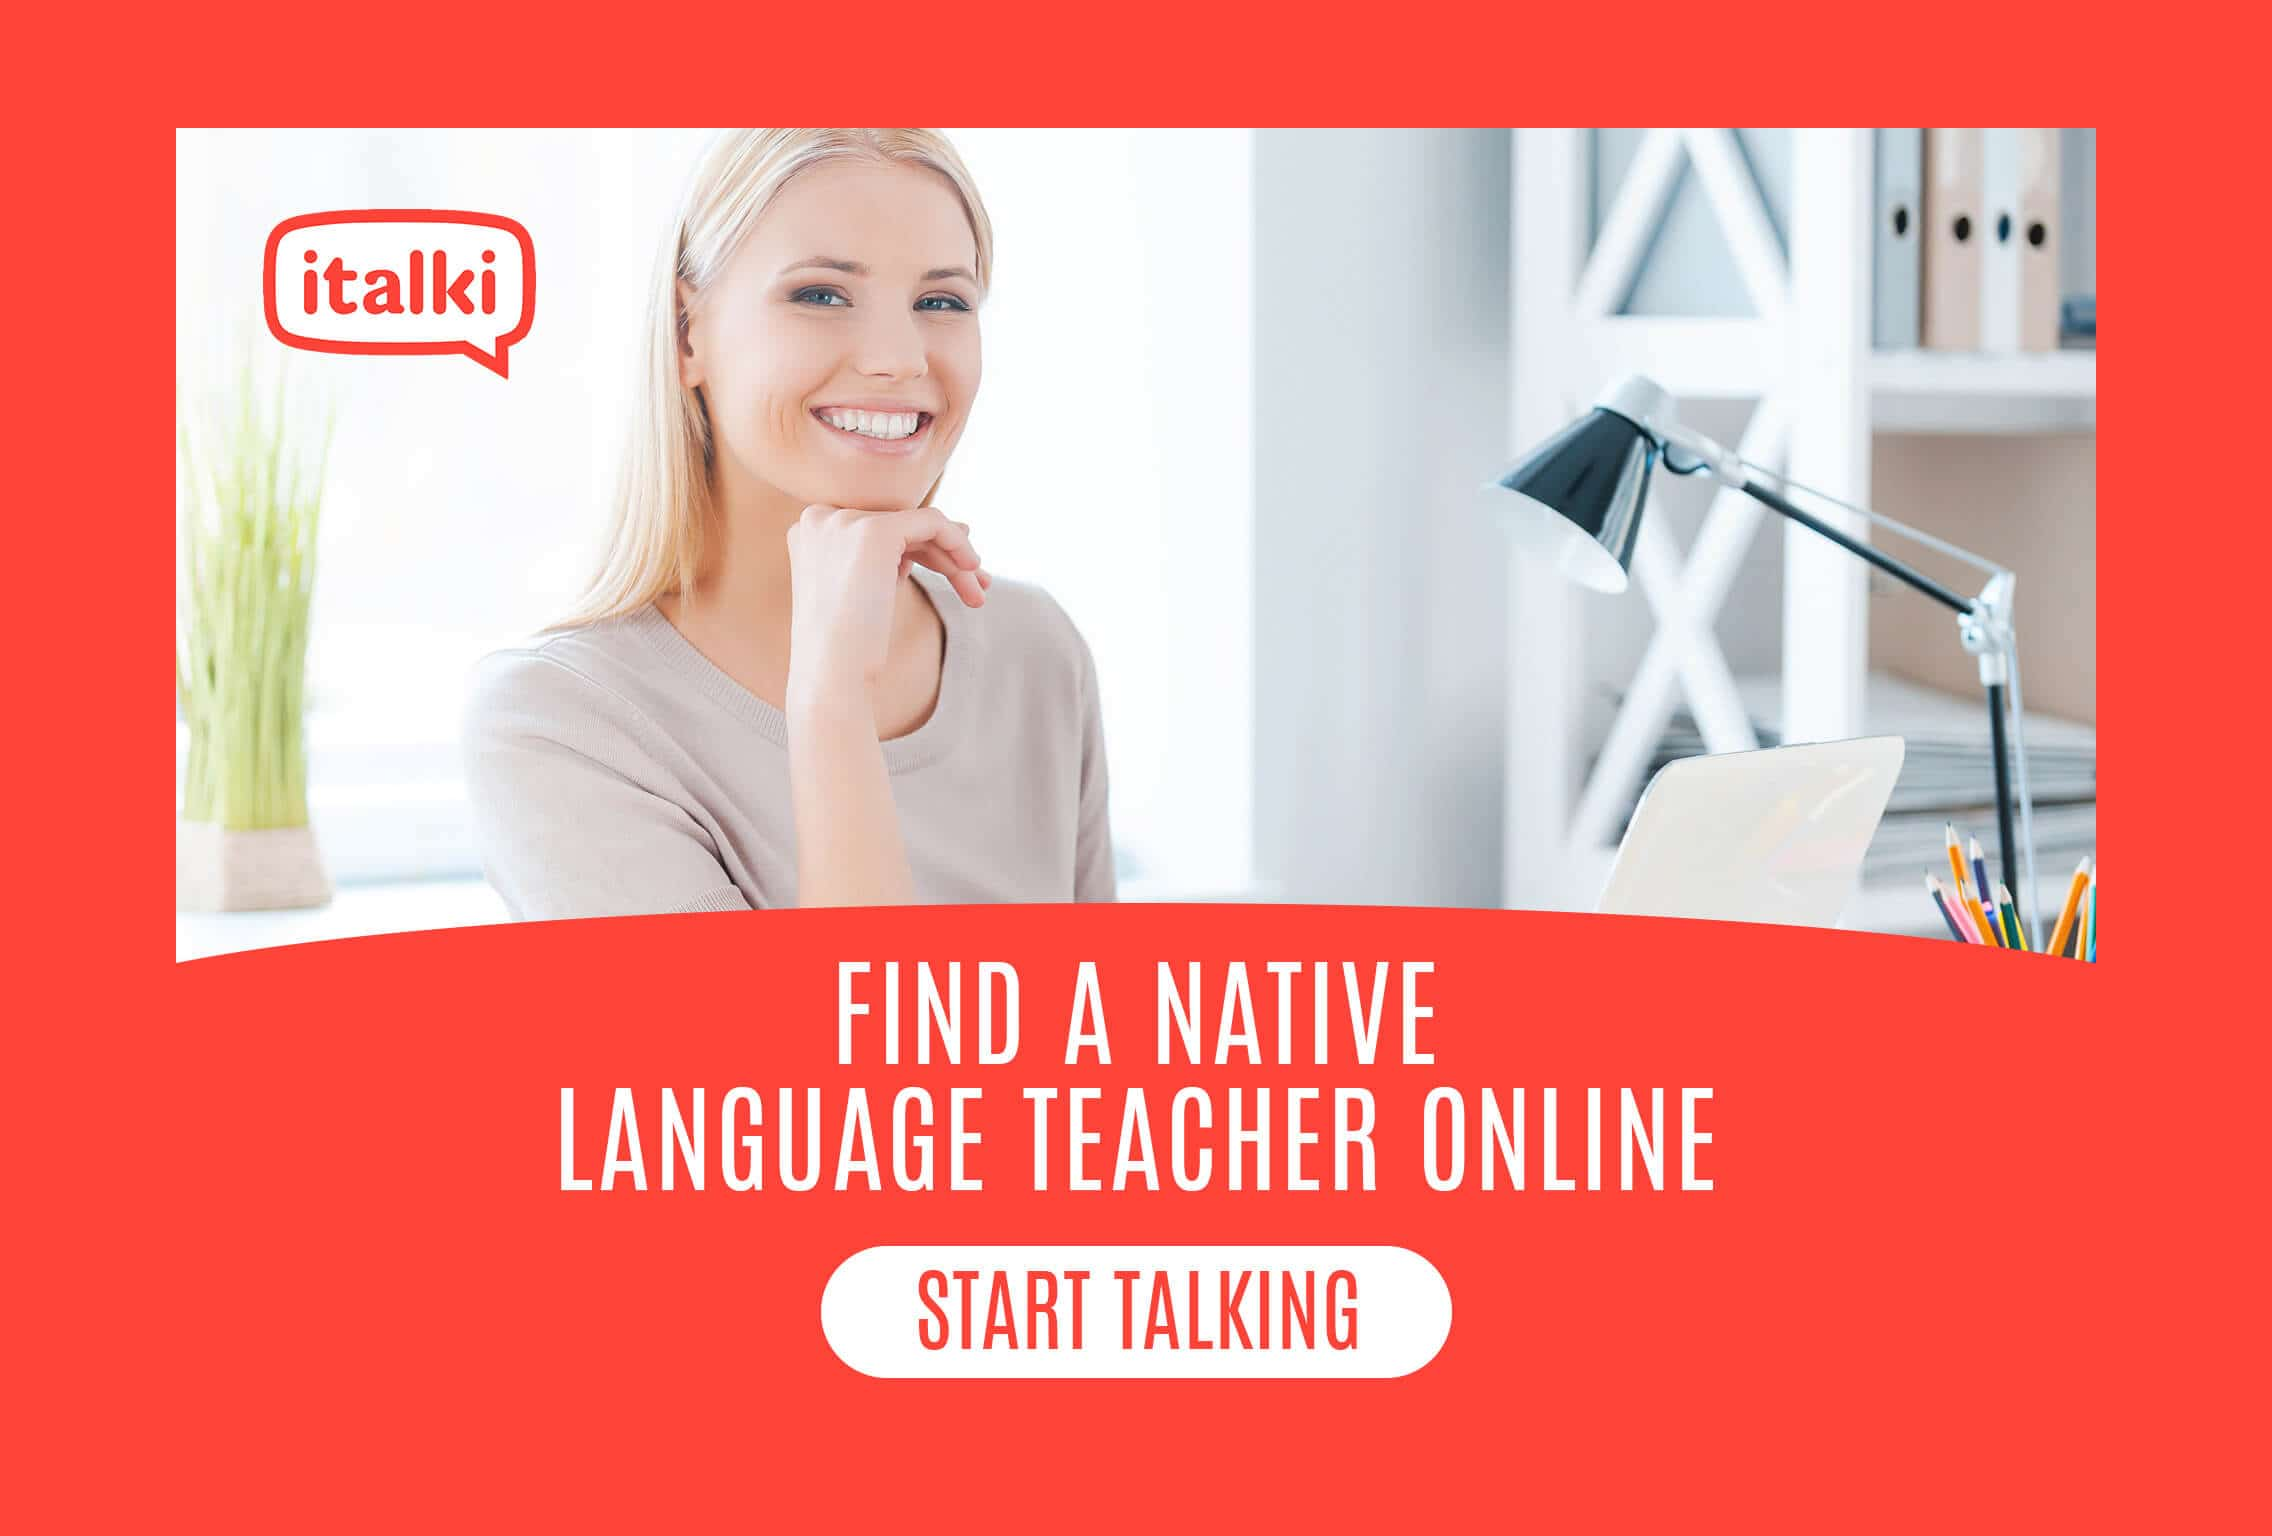 Spanish online lessons with italki